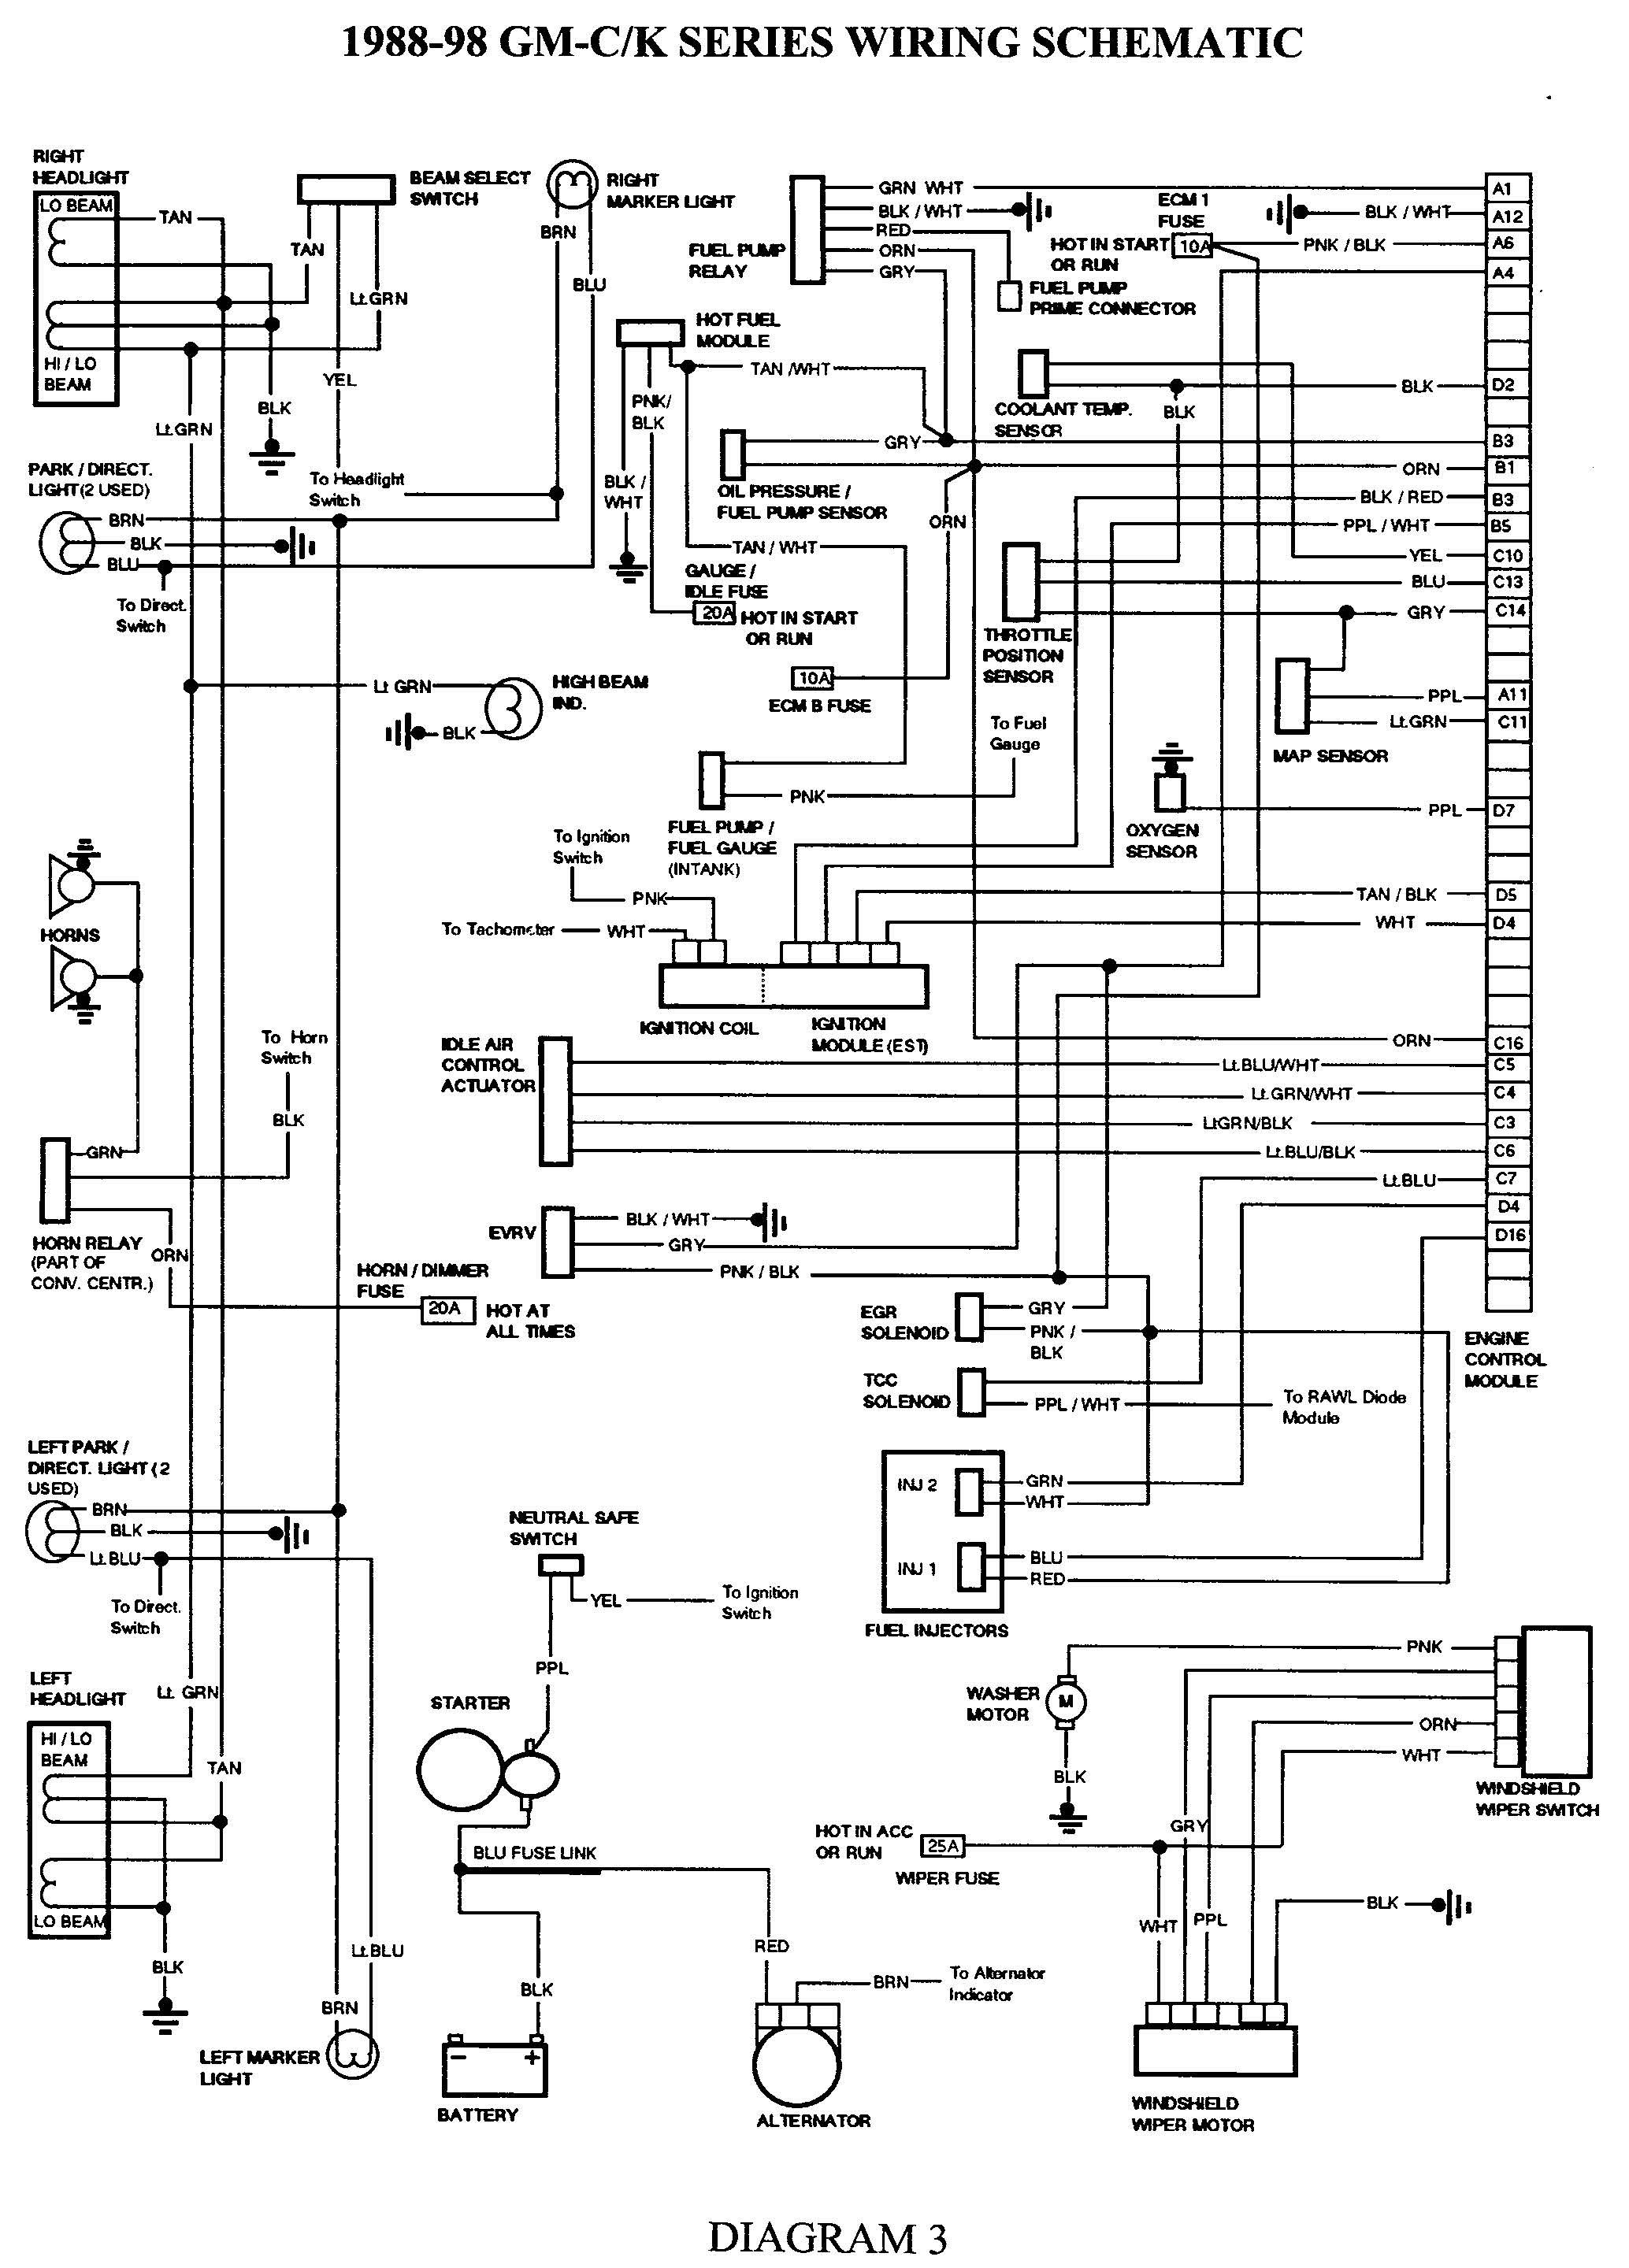 medium resolution of 1986 chevrolet c10 5 7 v8 engine wiring diagram chevrolet c 1500 2009 chevy silverado 1500 1500 chevy silverado diagram